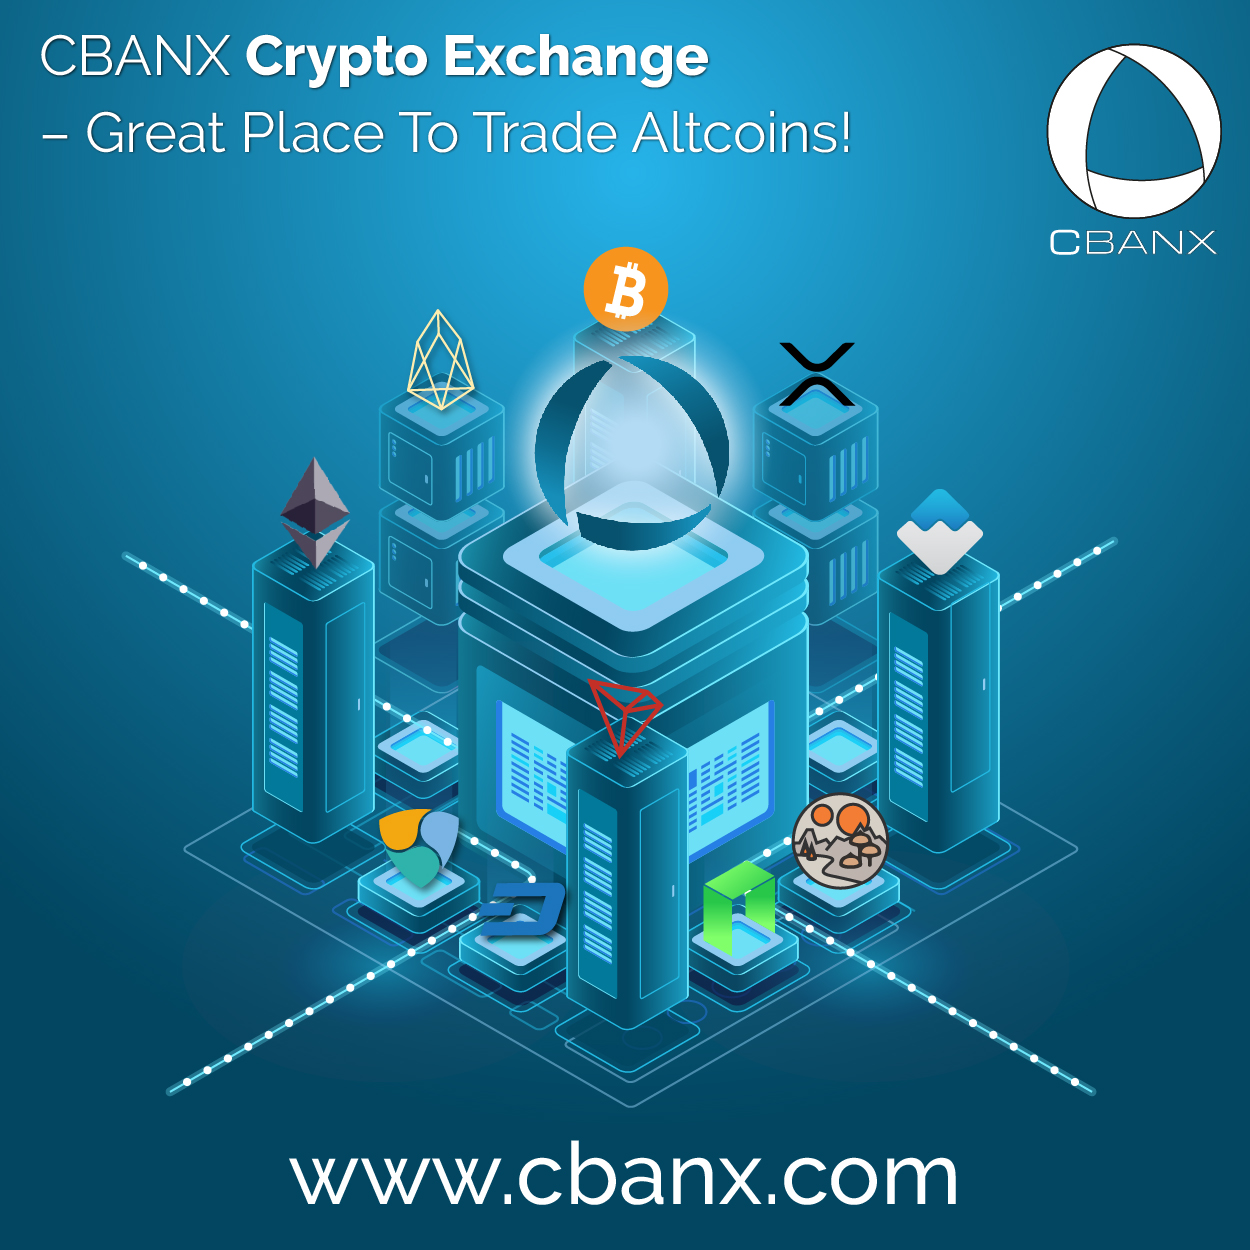 CBANX Crypto Exchange – Great Place To Trade Altcoins!